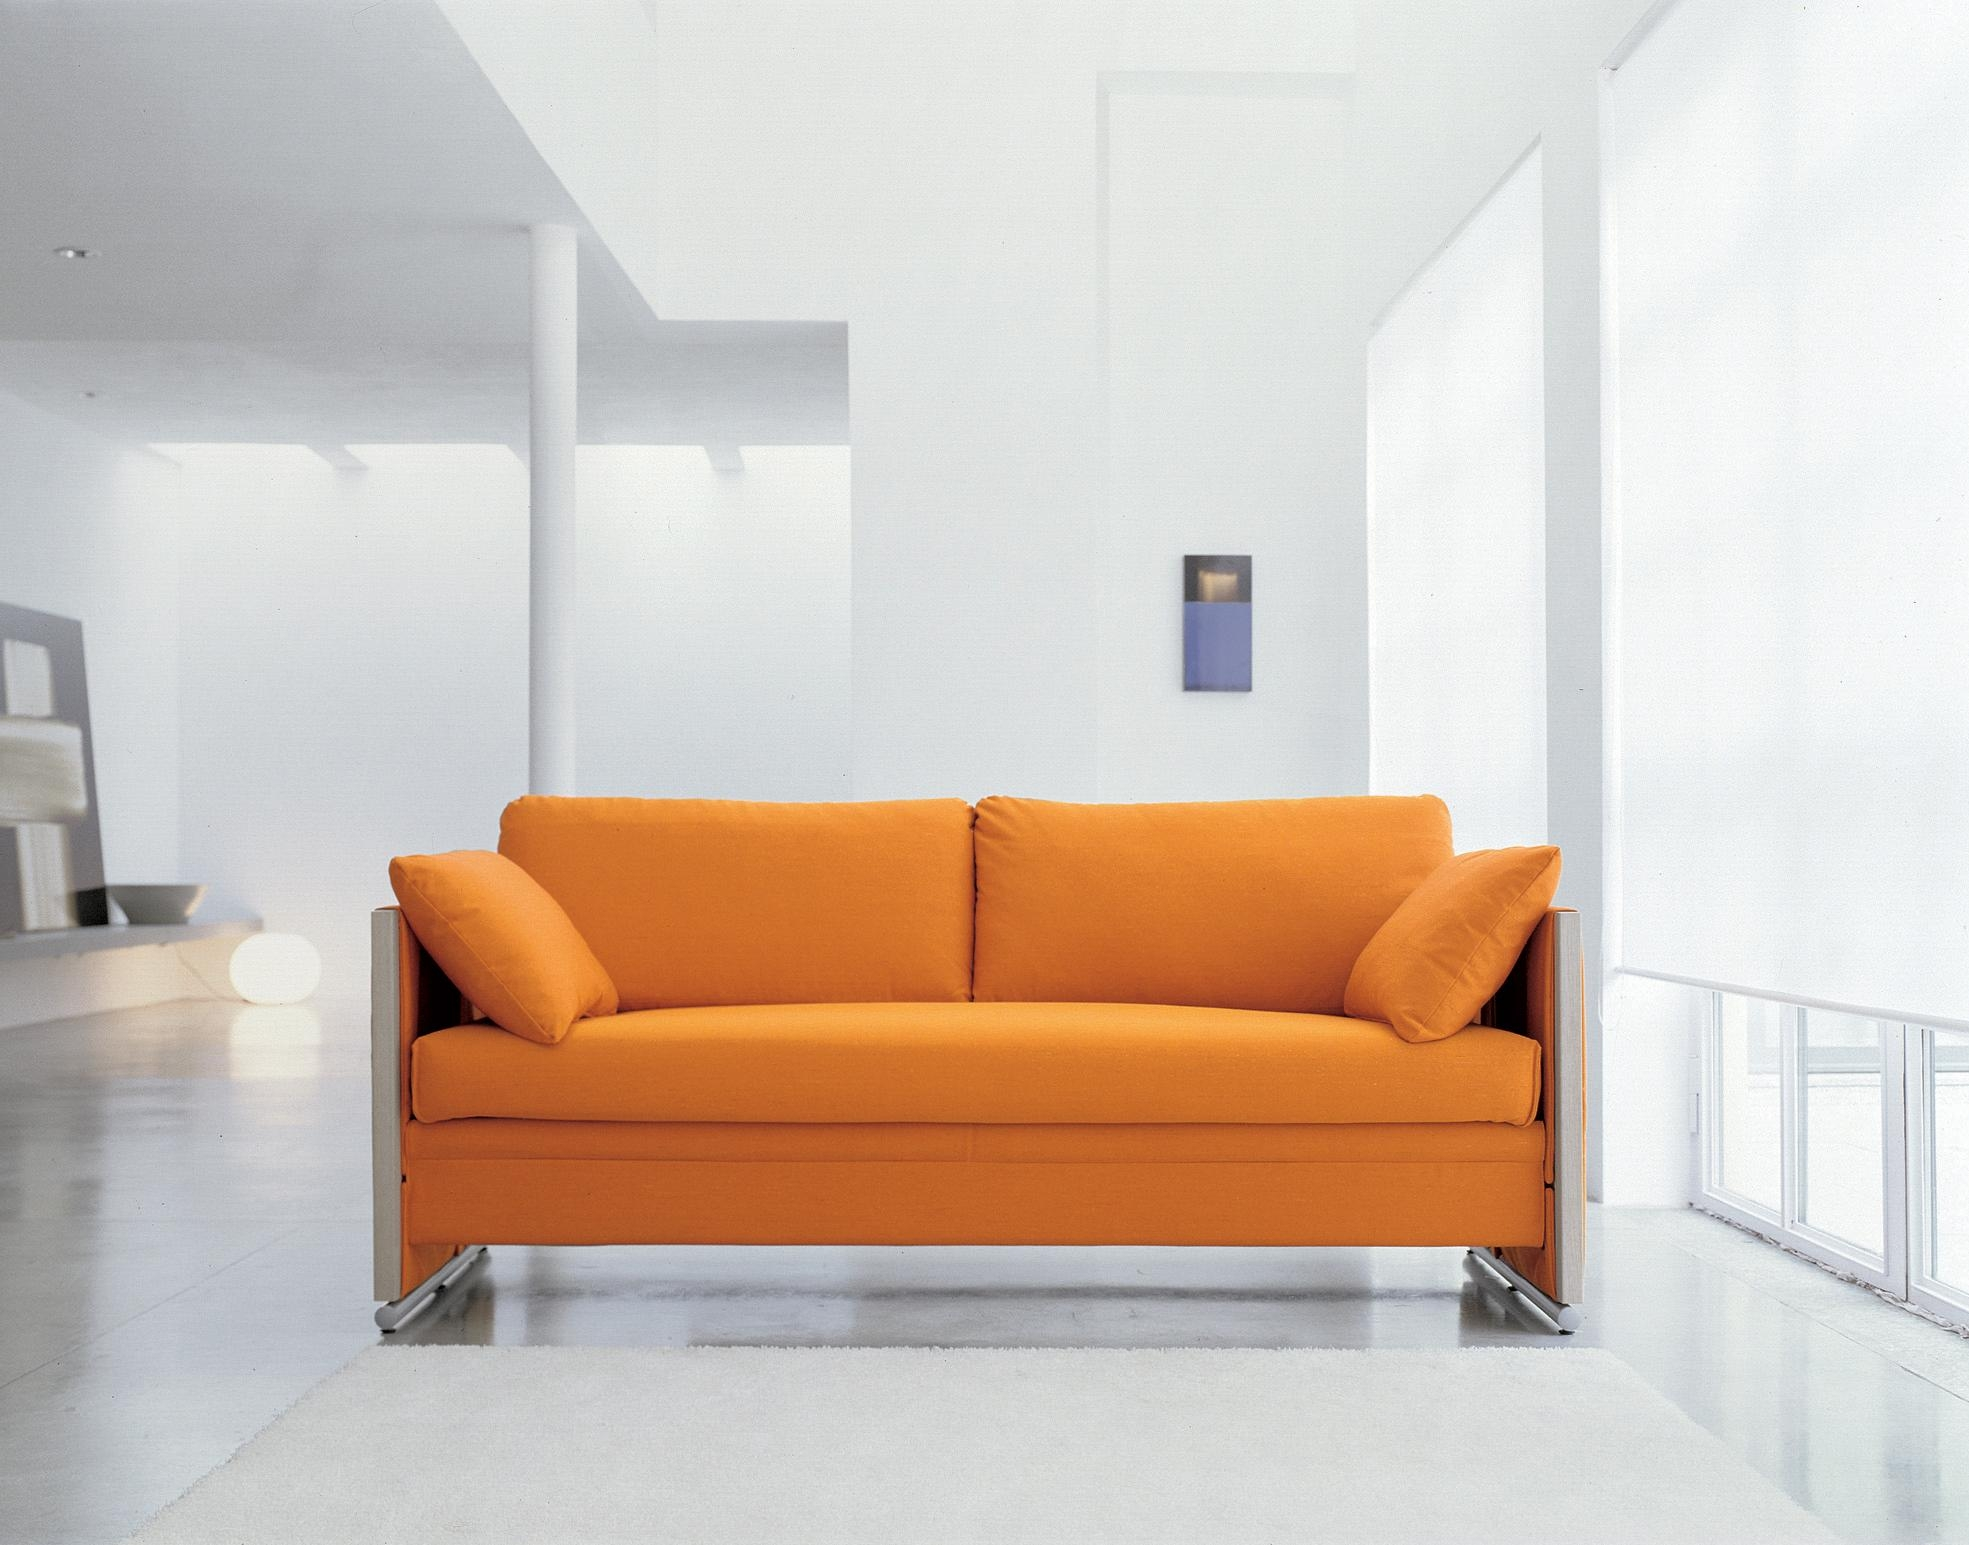 Doc A Sofa Bed That Converts In To A Bunk Bed In Two Secounds Throughout Sofa Bunk Beds (Image 9 of 20)